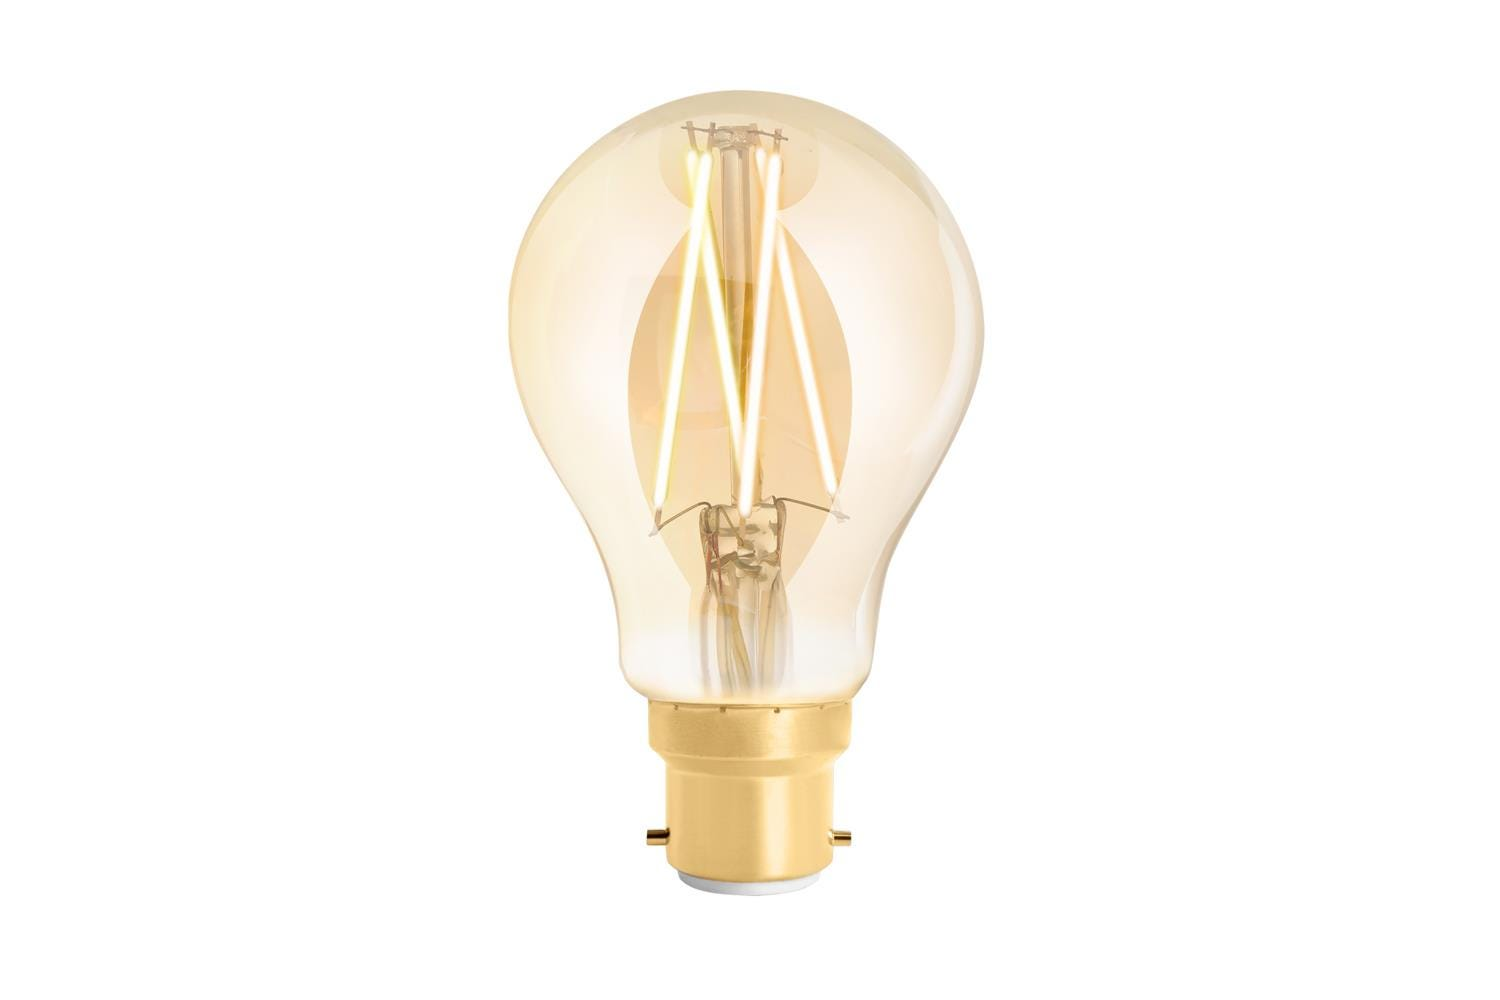 4lite WiZ Connected A60 Edison Filament LED Smart Bulb Amber White Dimmable WiFi  - B22 Bayonet